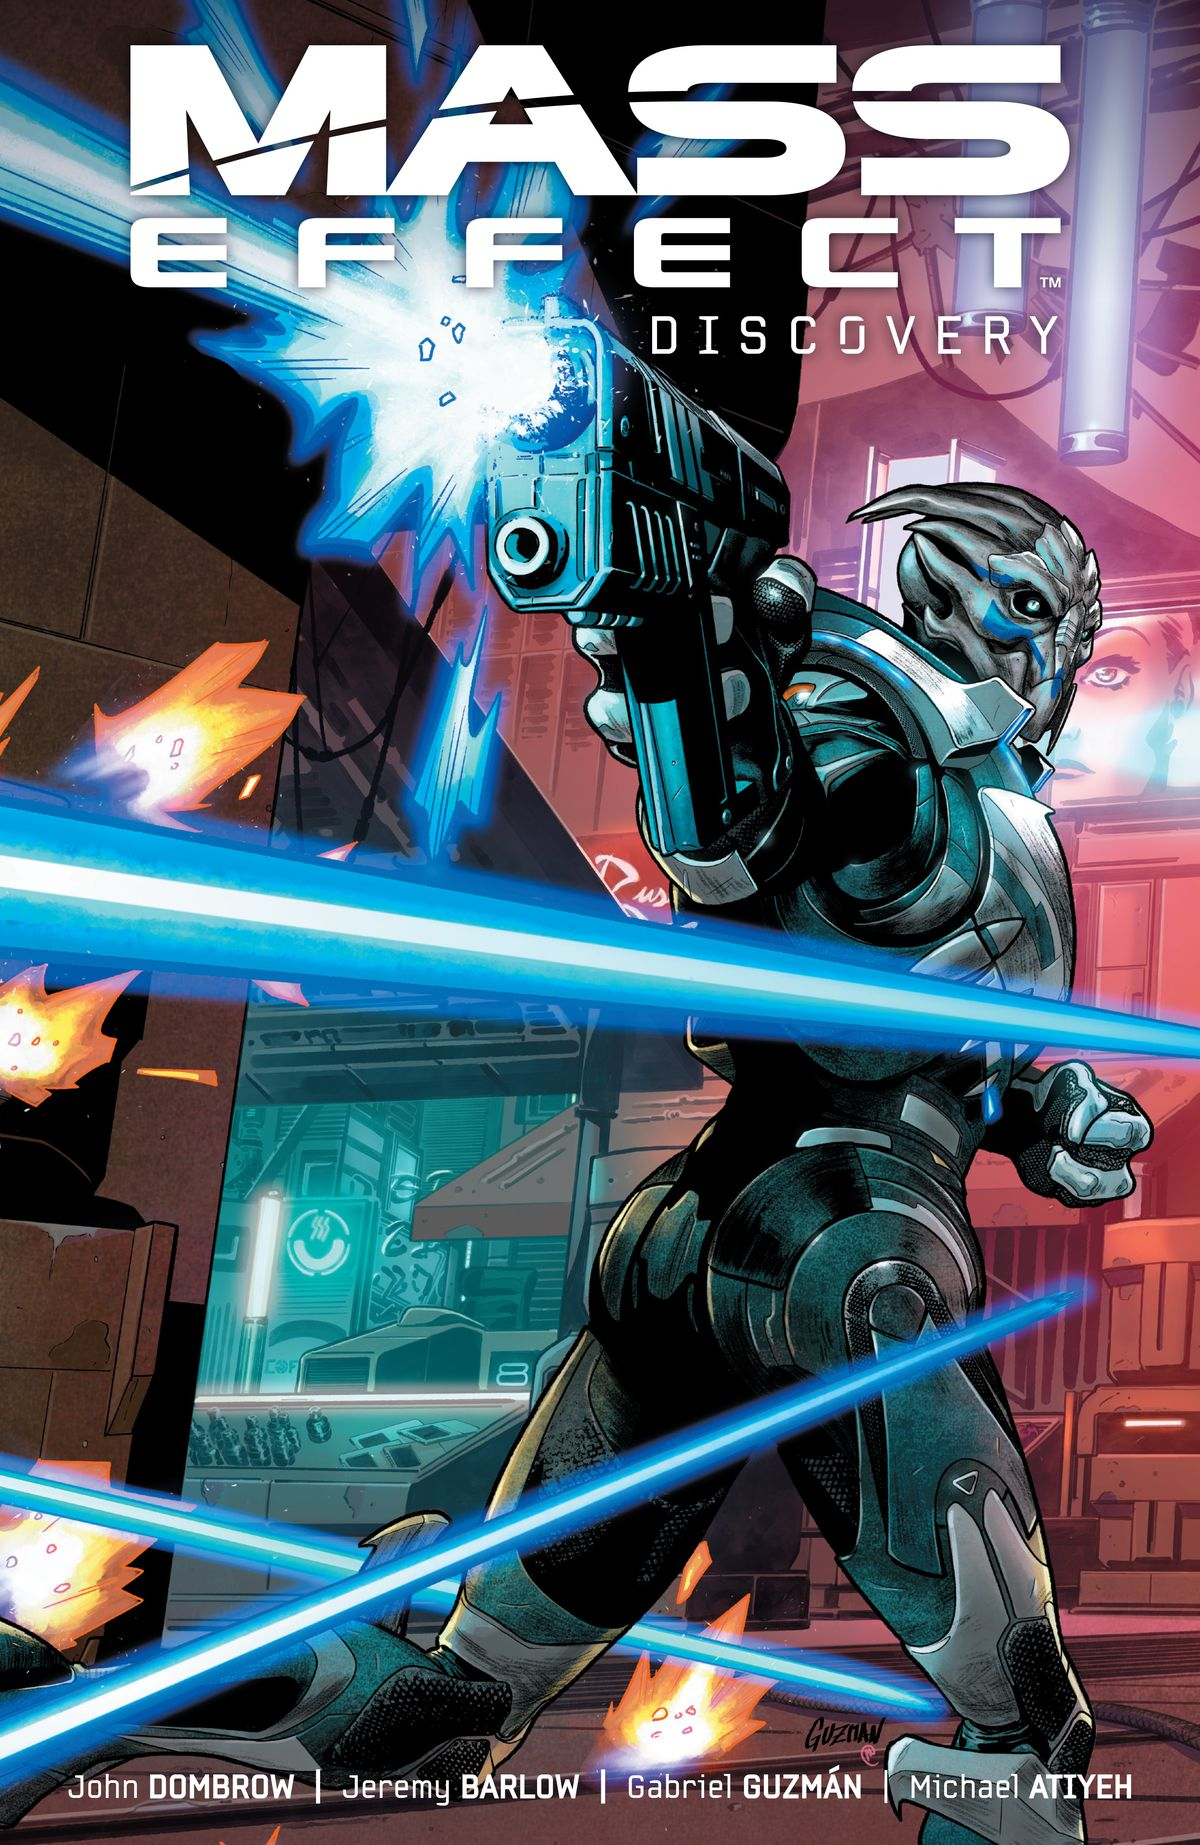 The cover of Mass Effect: Discovery, Dark Horse Comics, 2017.